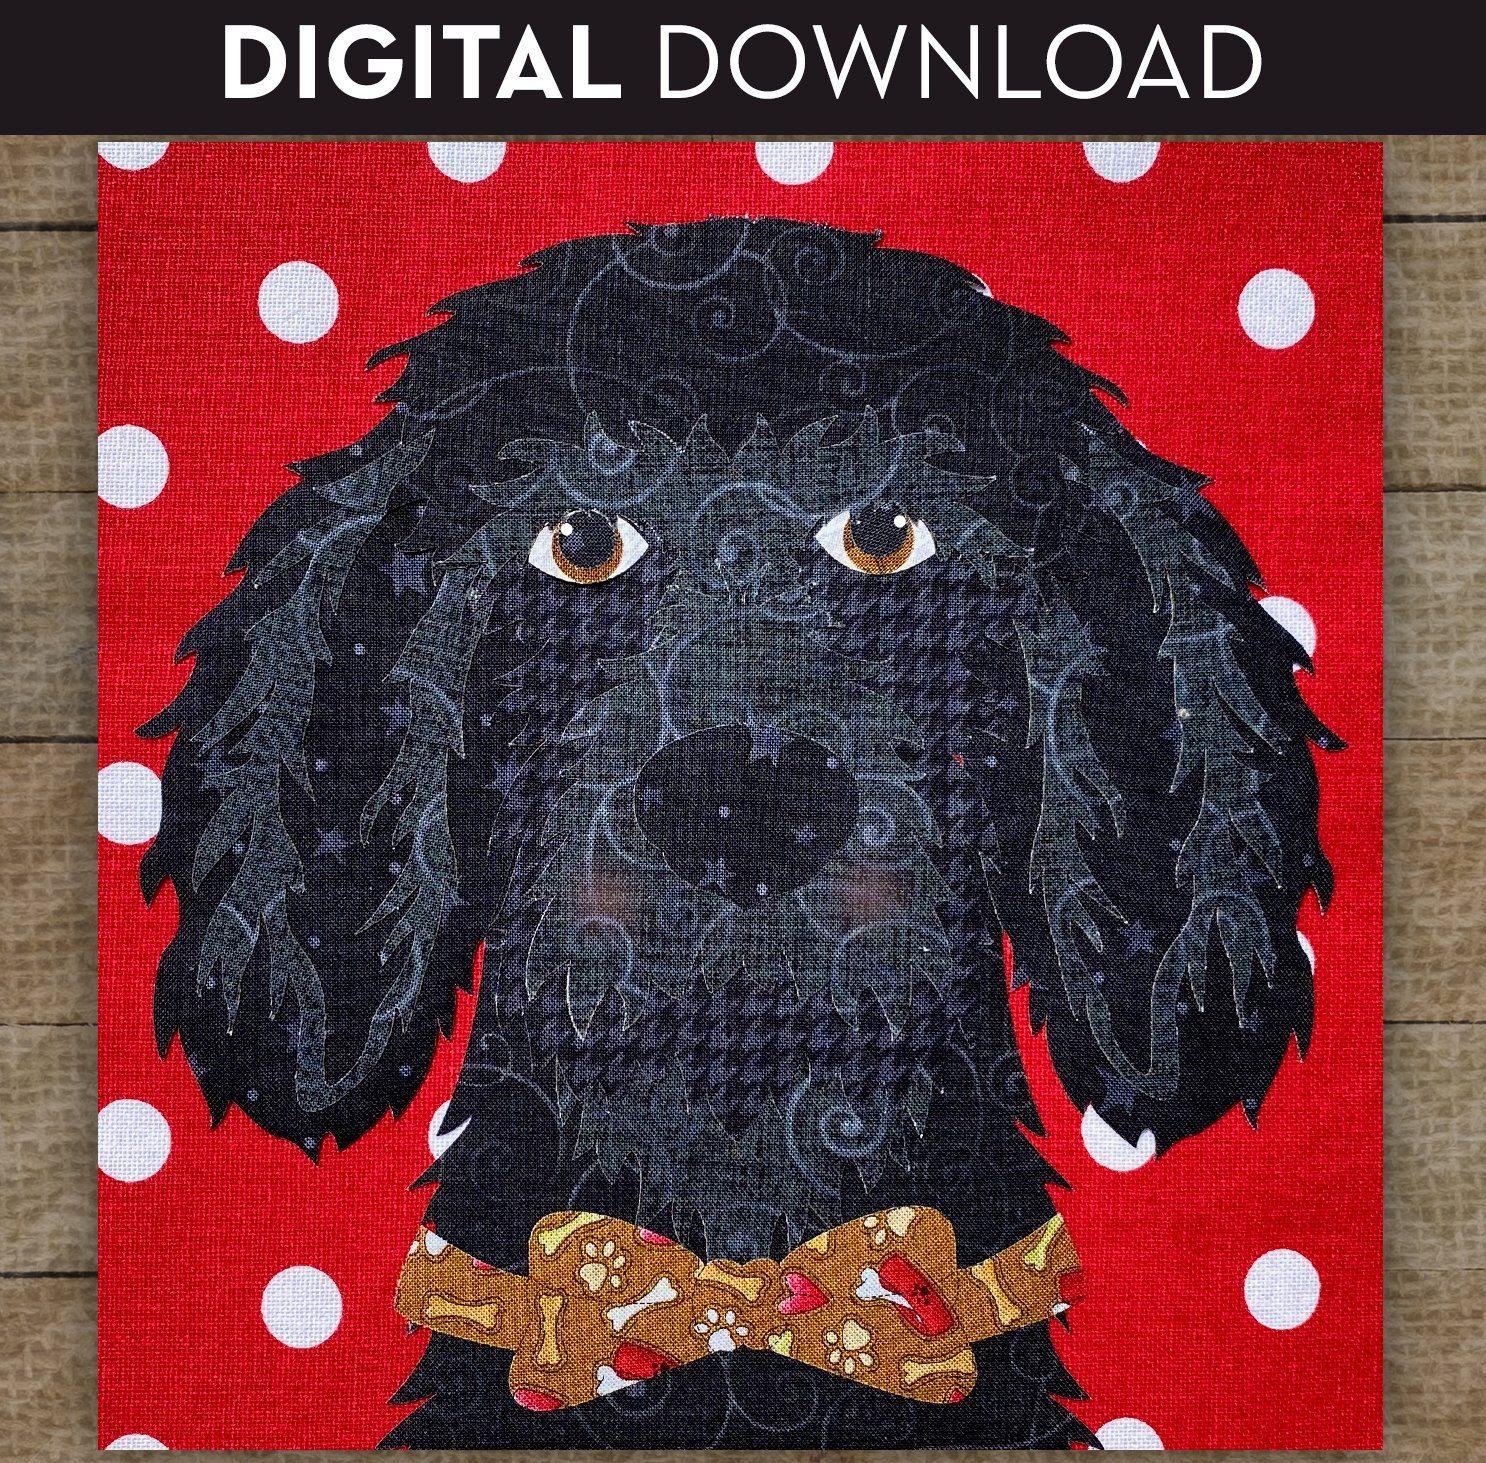 Portuguese Water Dog - Download